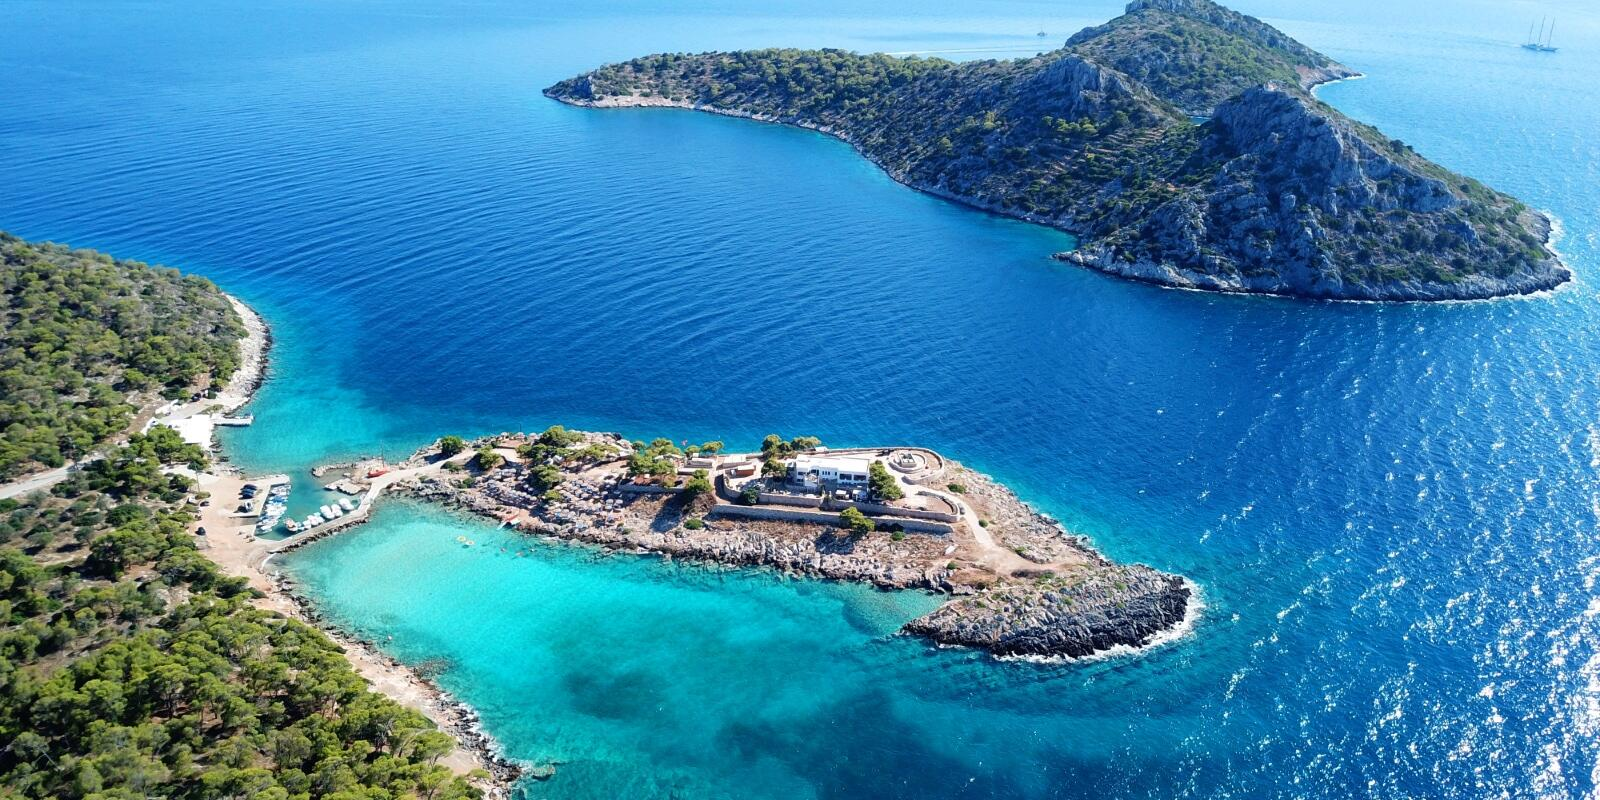 Discover sailing paradise and amazing food in Greece